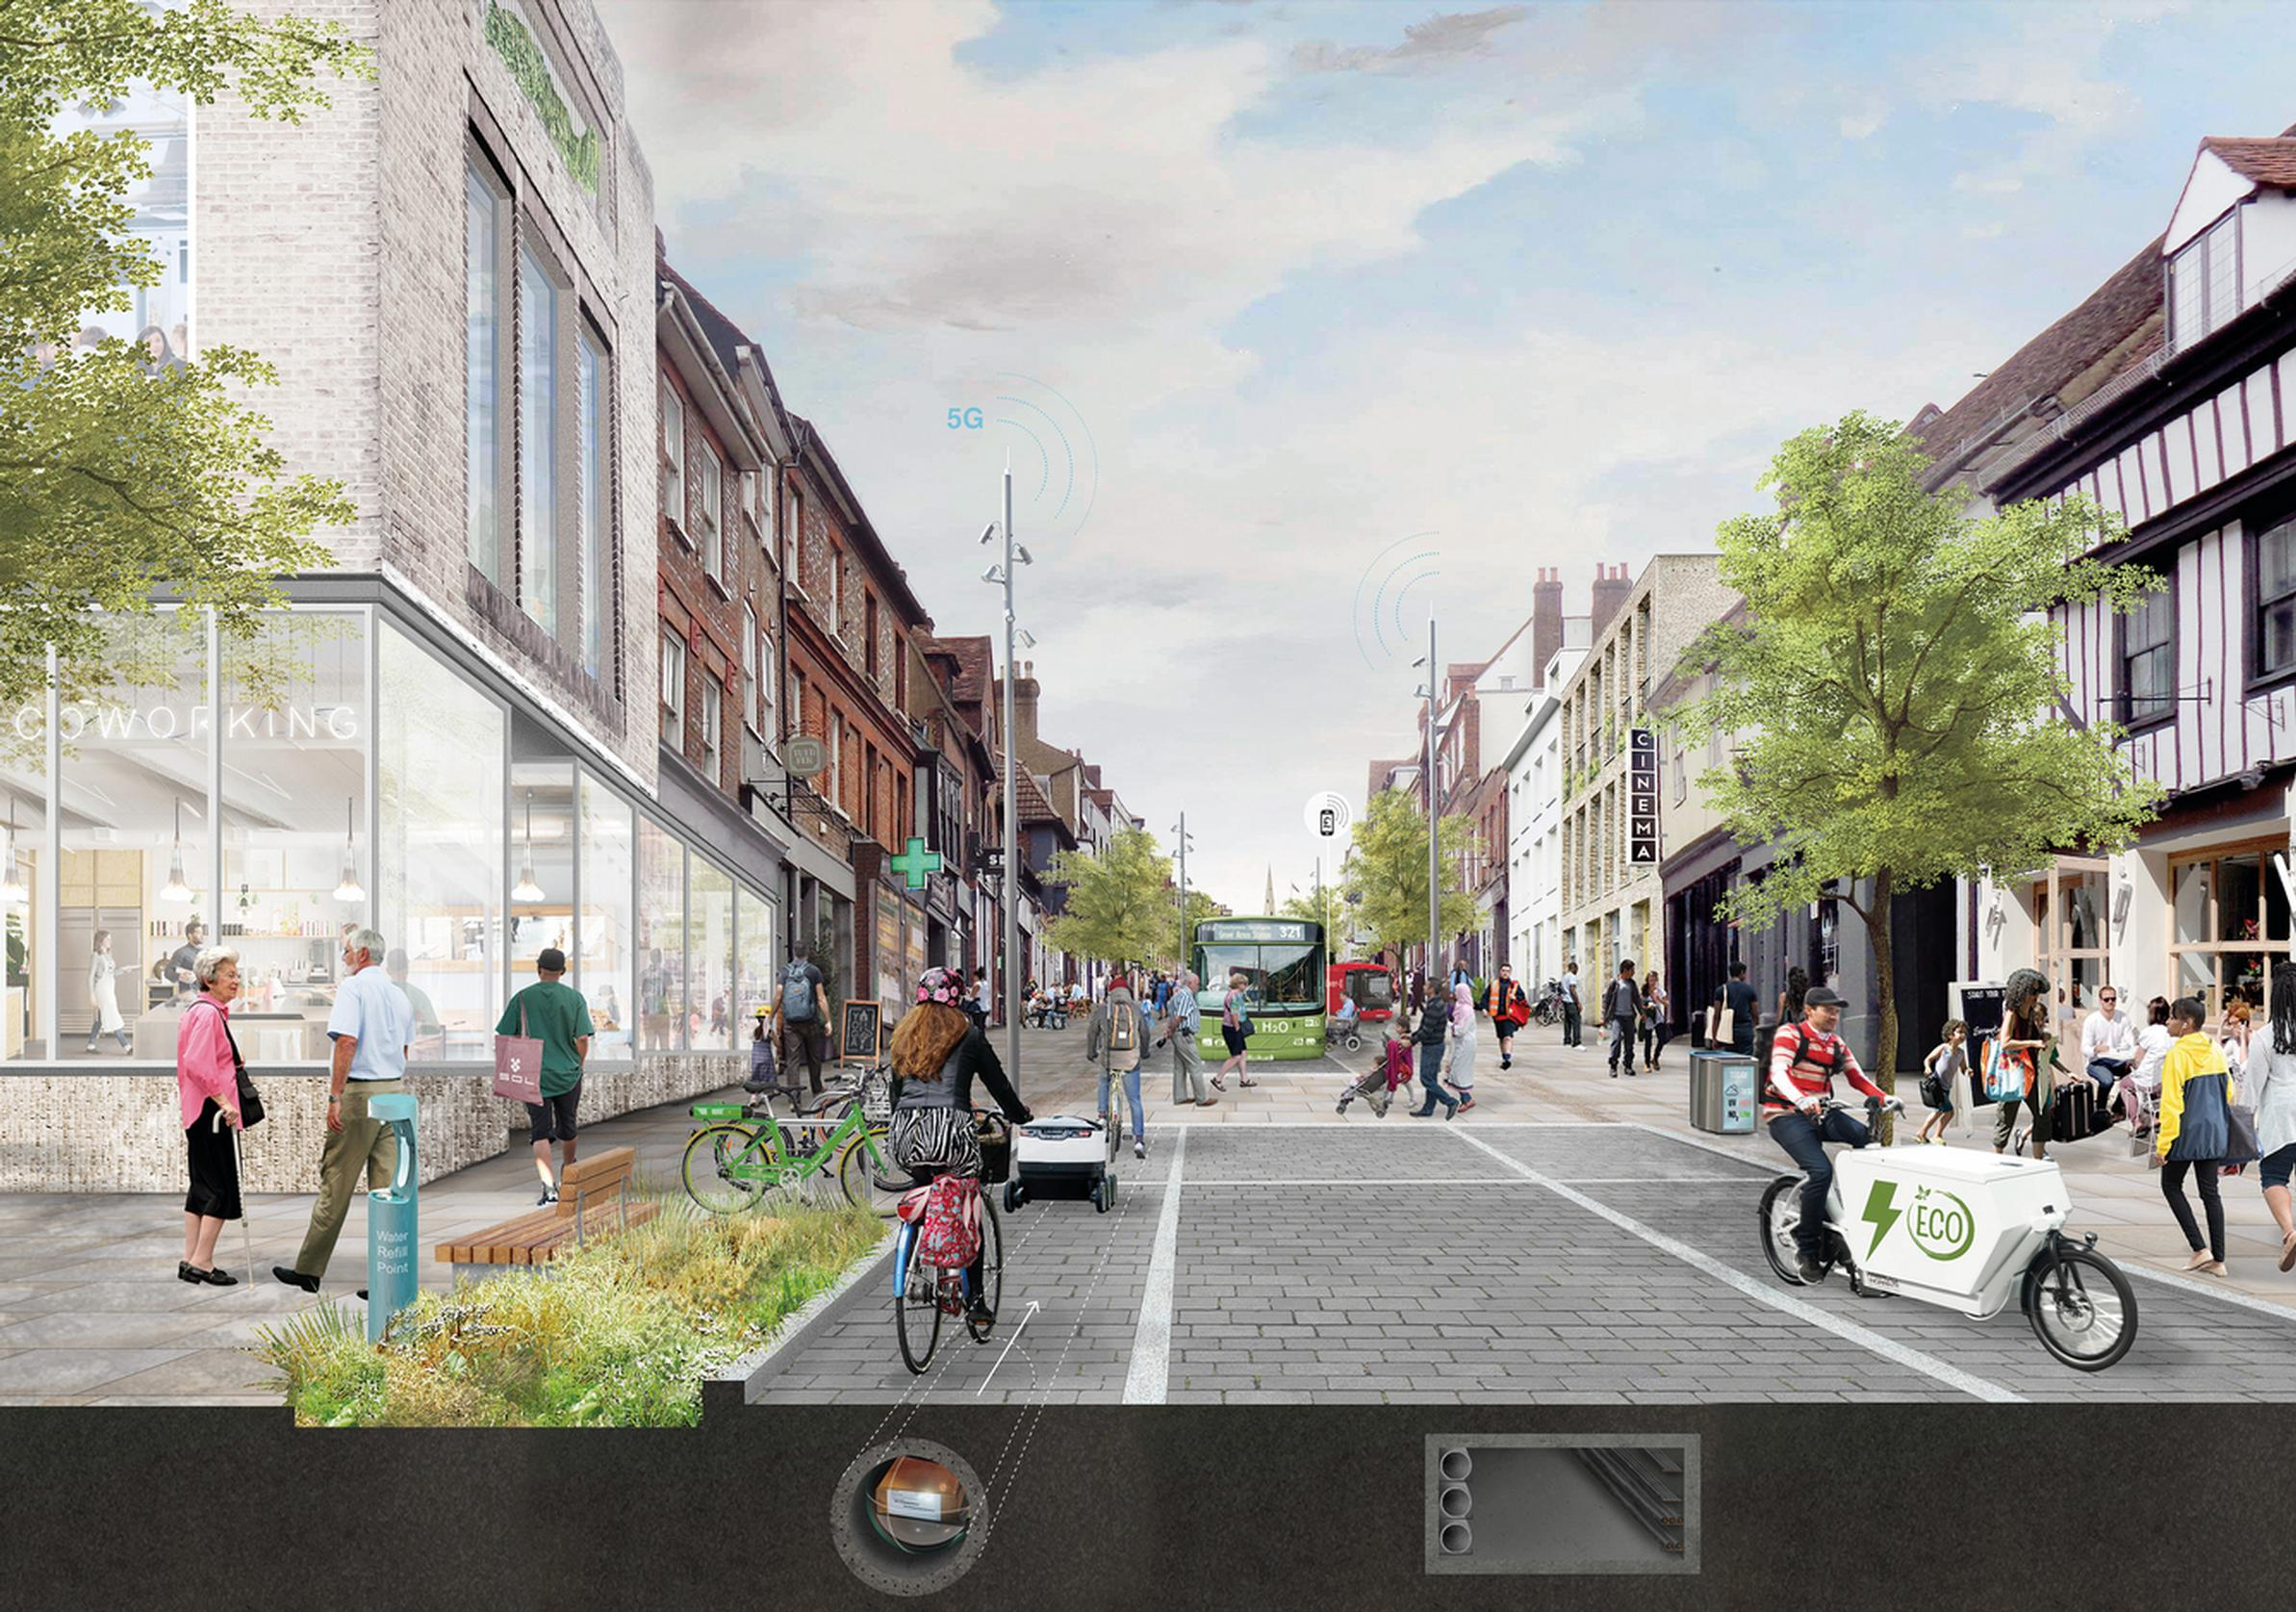 England`s Economic Heartland and 5th Studio`s vision of the High Street in 2050